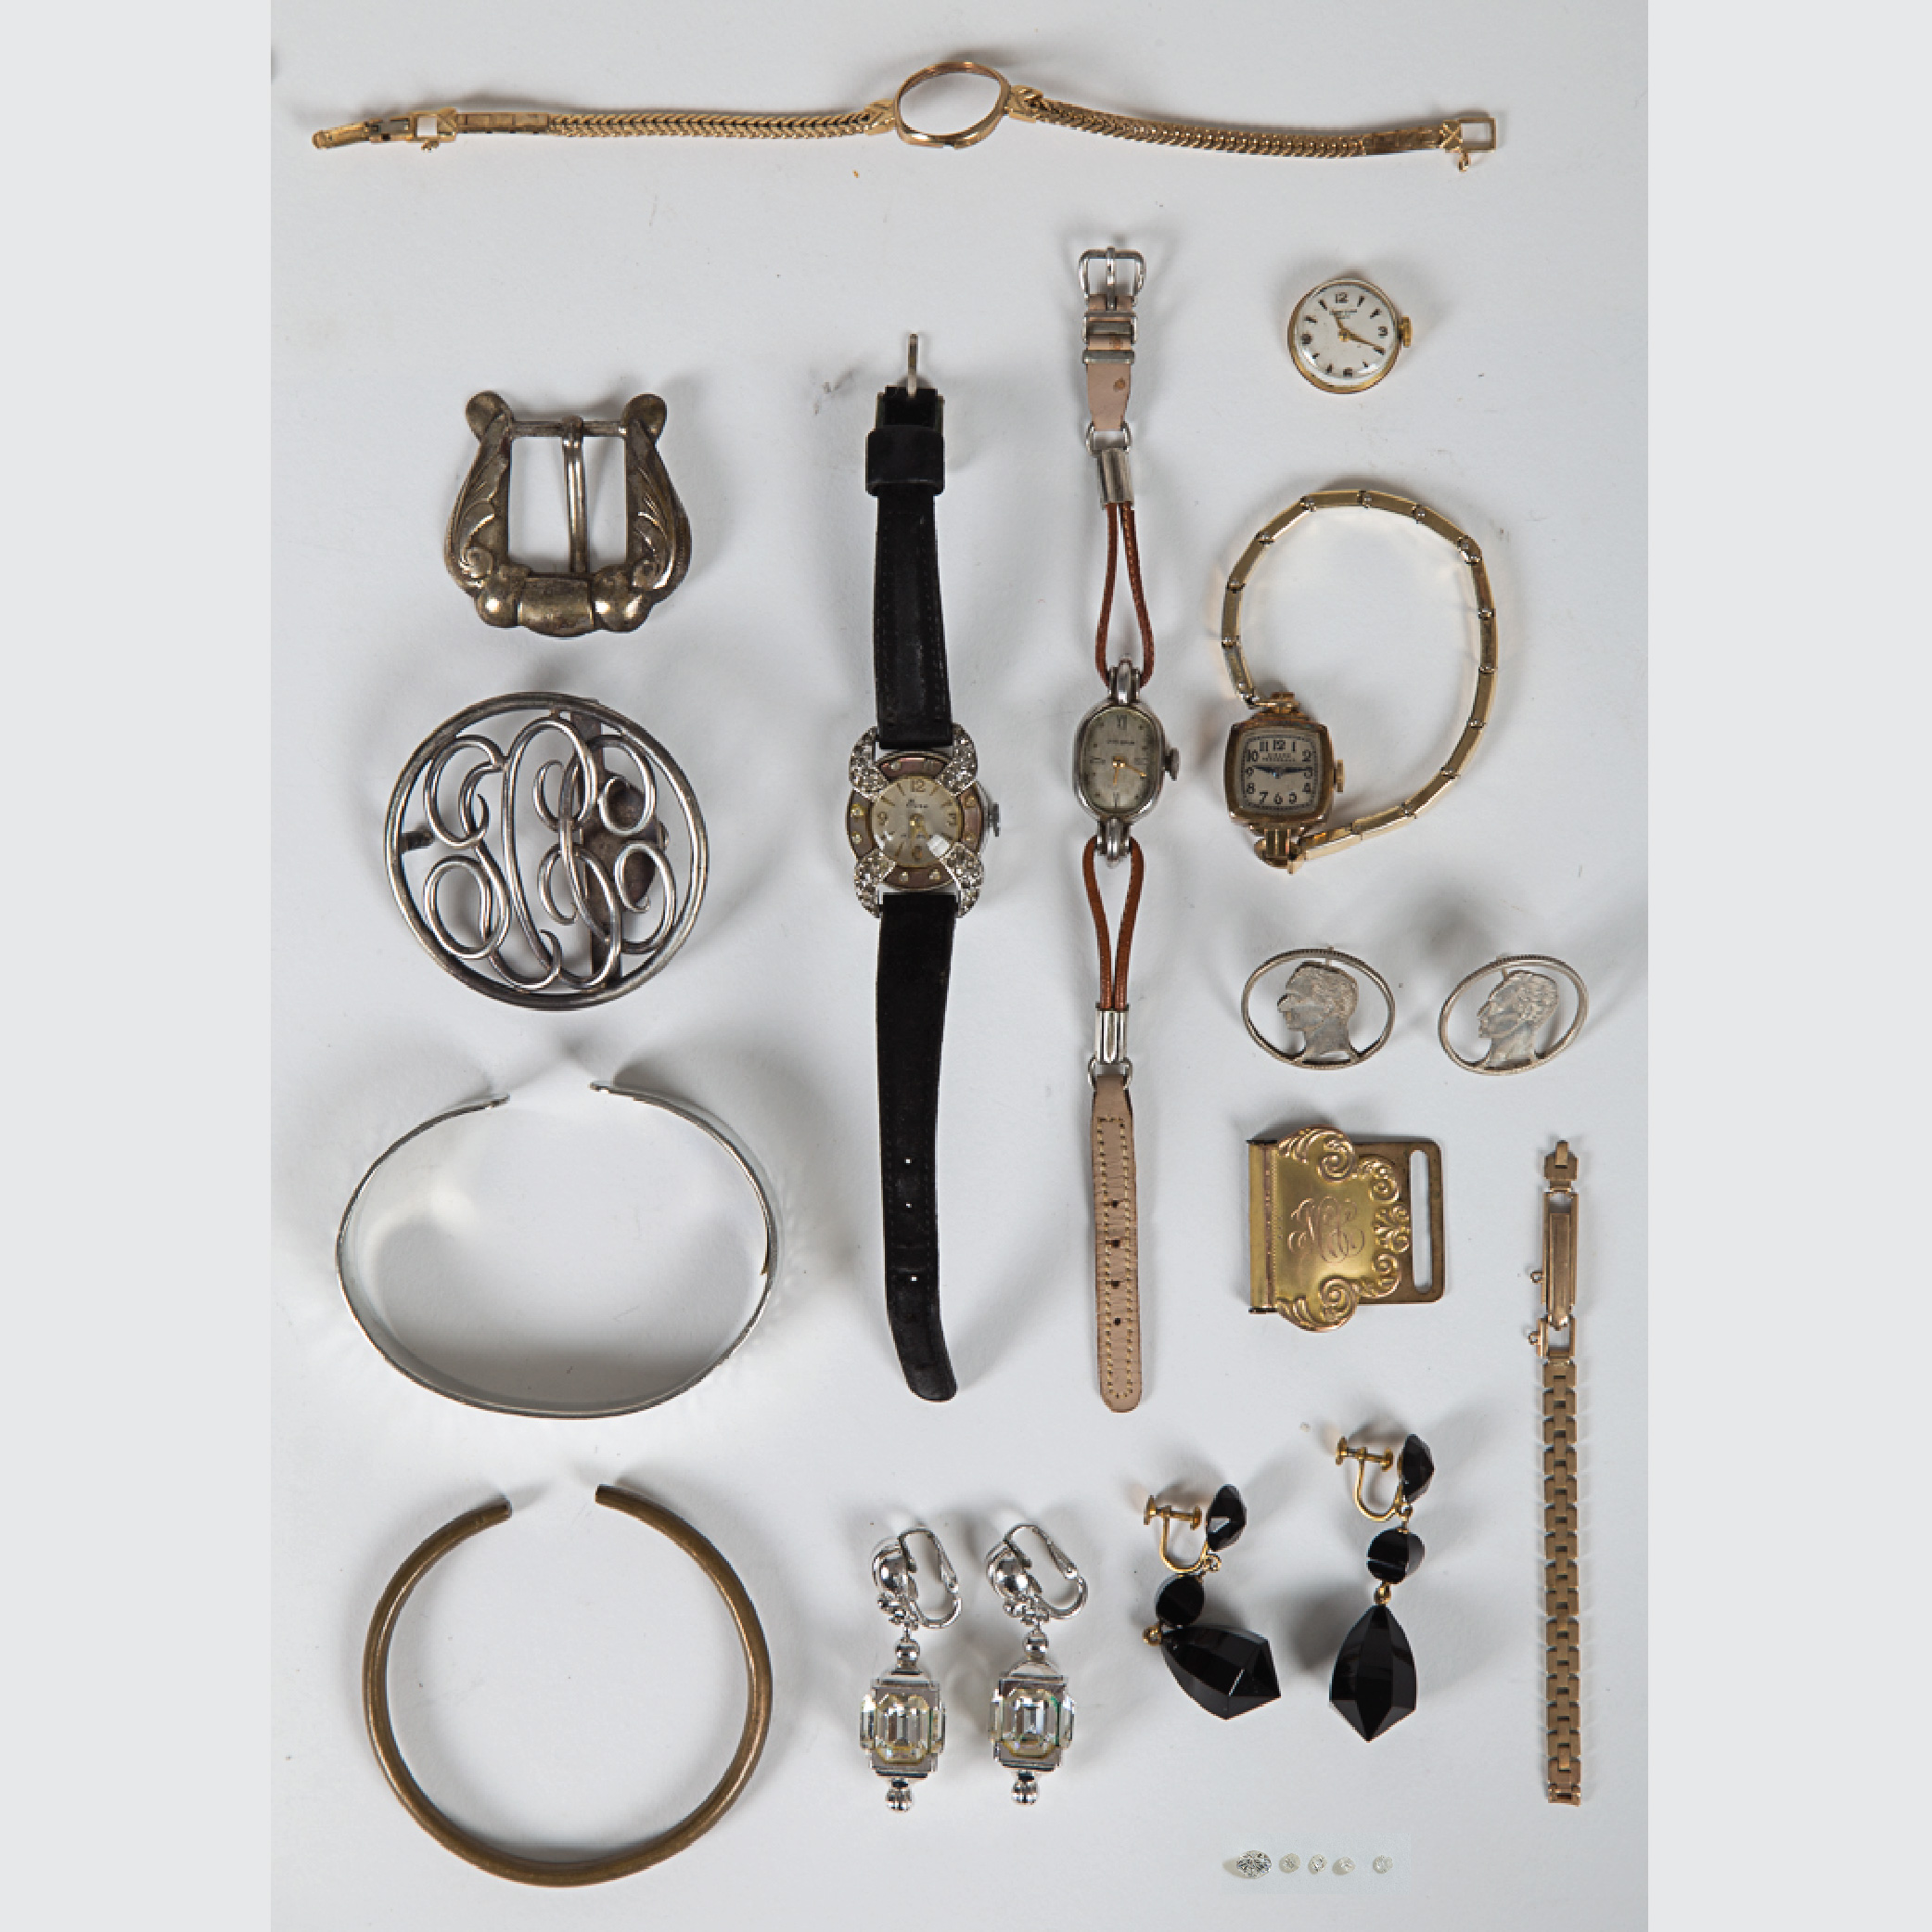 Miscellaneous Collection of Jewelry-